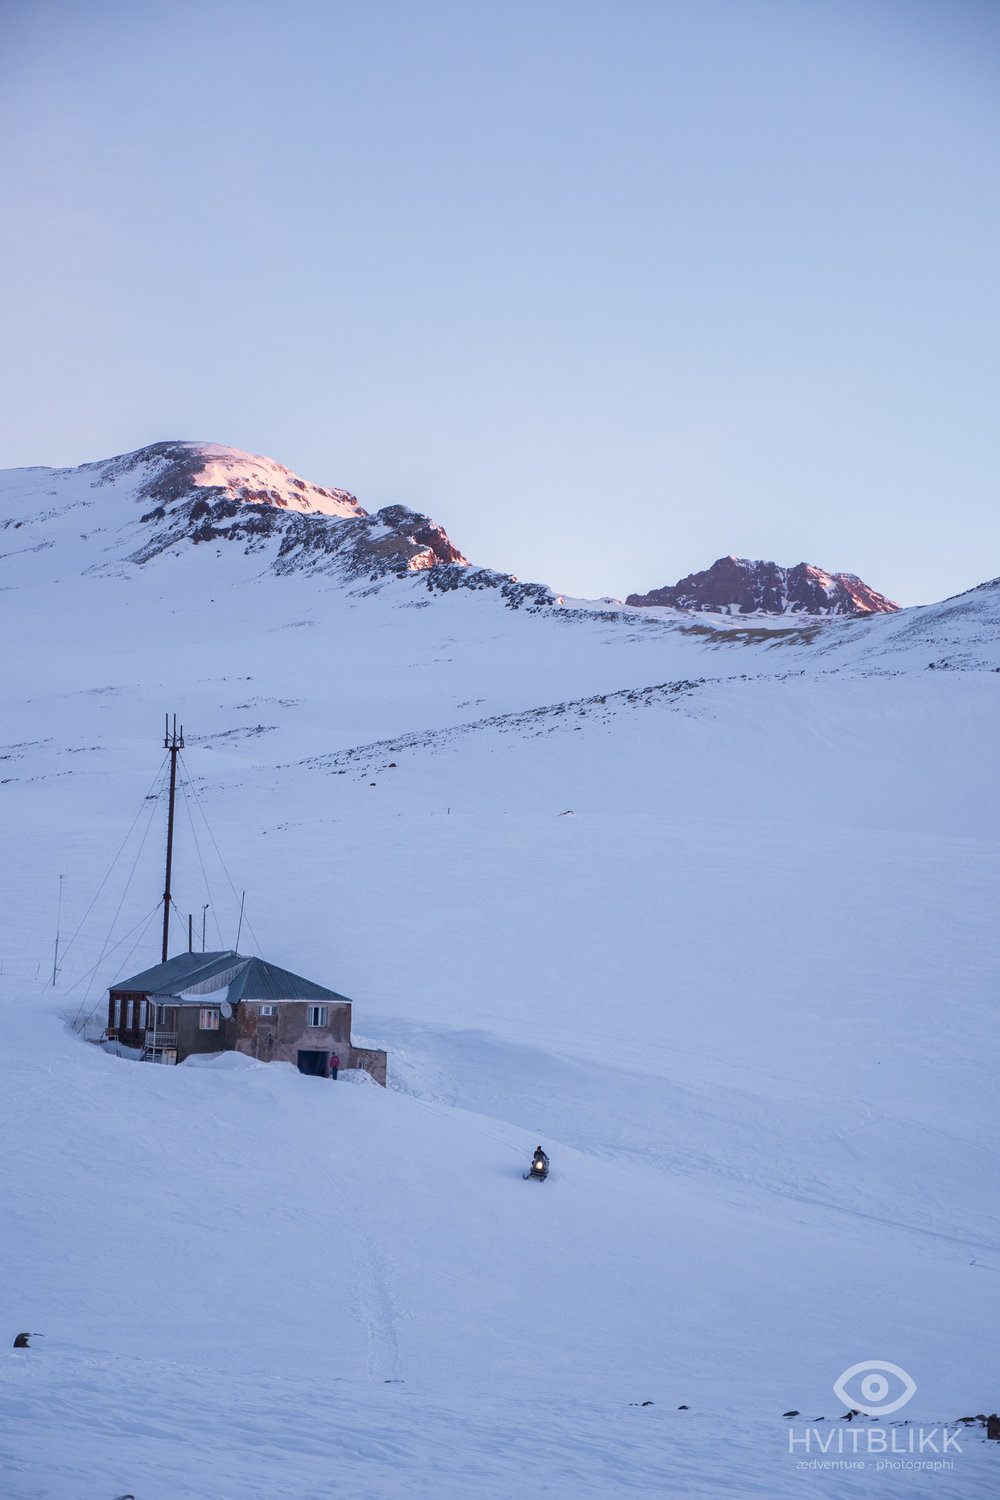 At a height of 3200 meters above see level, just below the top of Armenia's highest mountain, Aragat, there is a metrological station where you could spend the night. The conditions are simple, but it gives greater access to the highest mountain early in the season. Later in the season there is an open roadway up to the station.